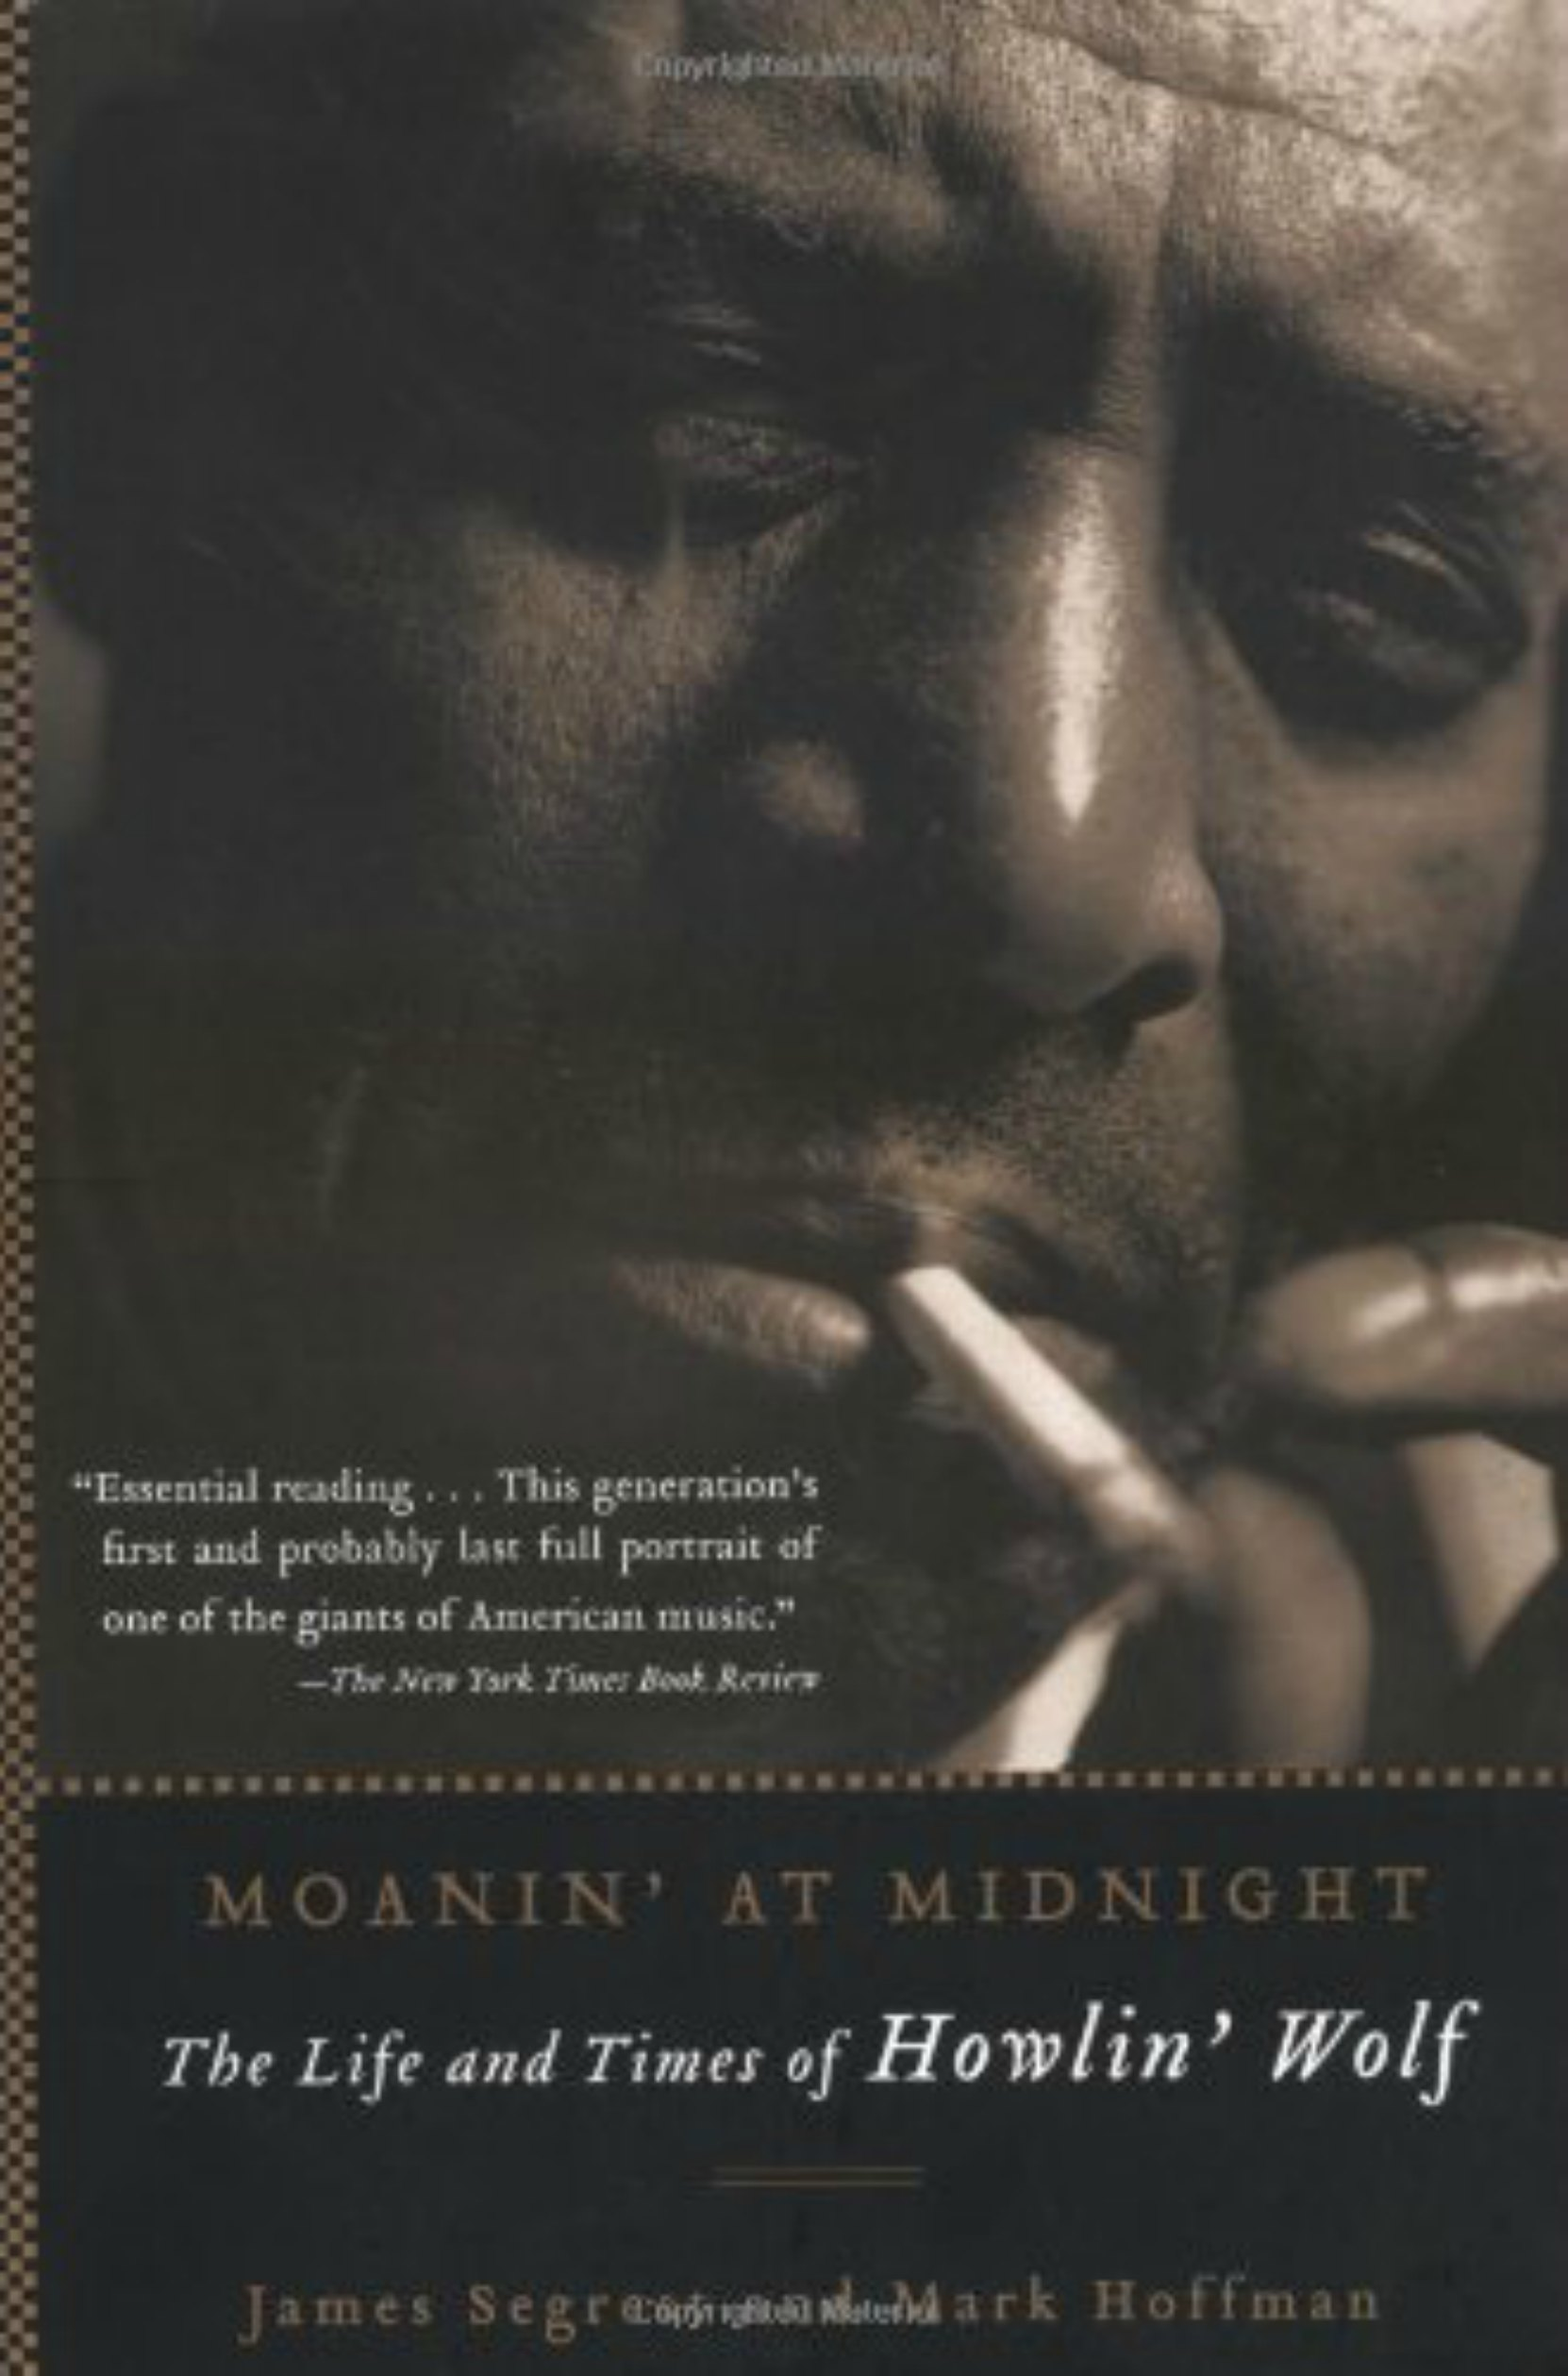 Book cover, Moanin' At Midnight - The Life and Times of Howlin' Wolf by James Segrest and Mark Hoffman